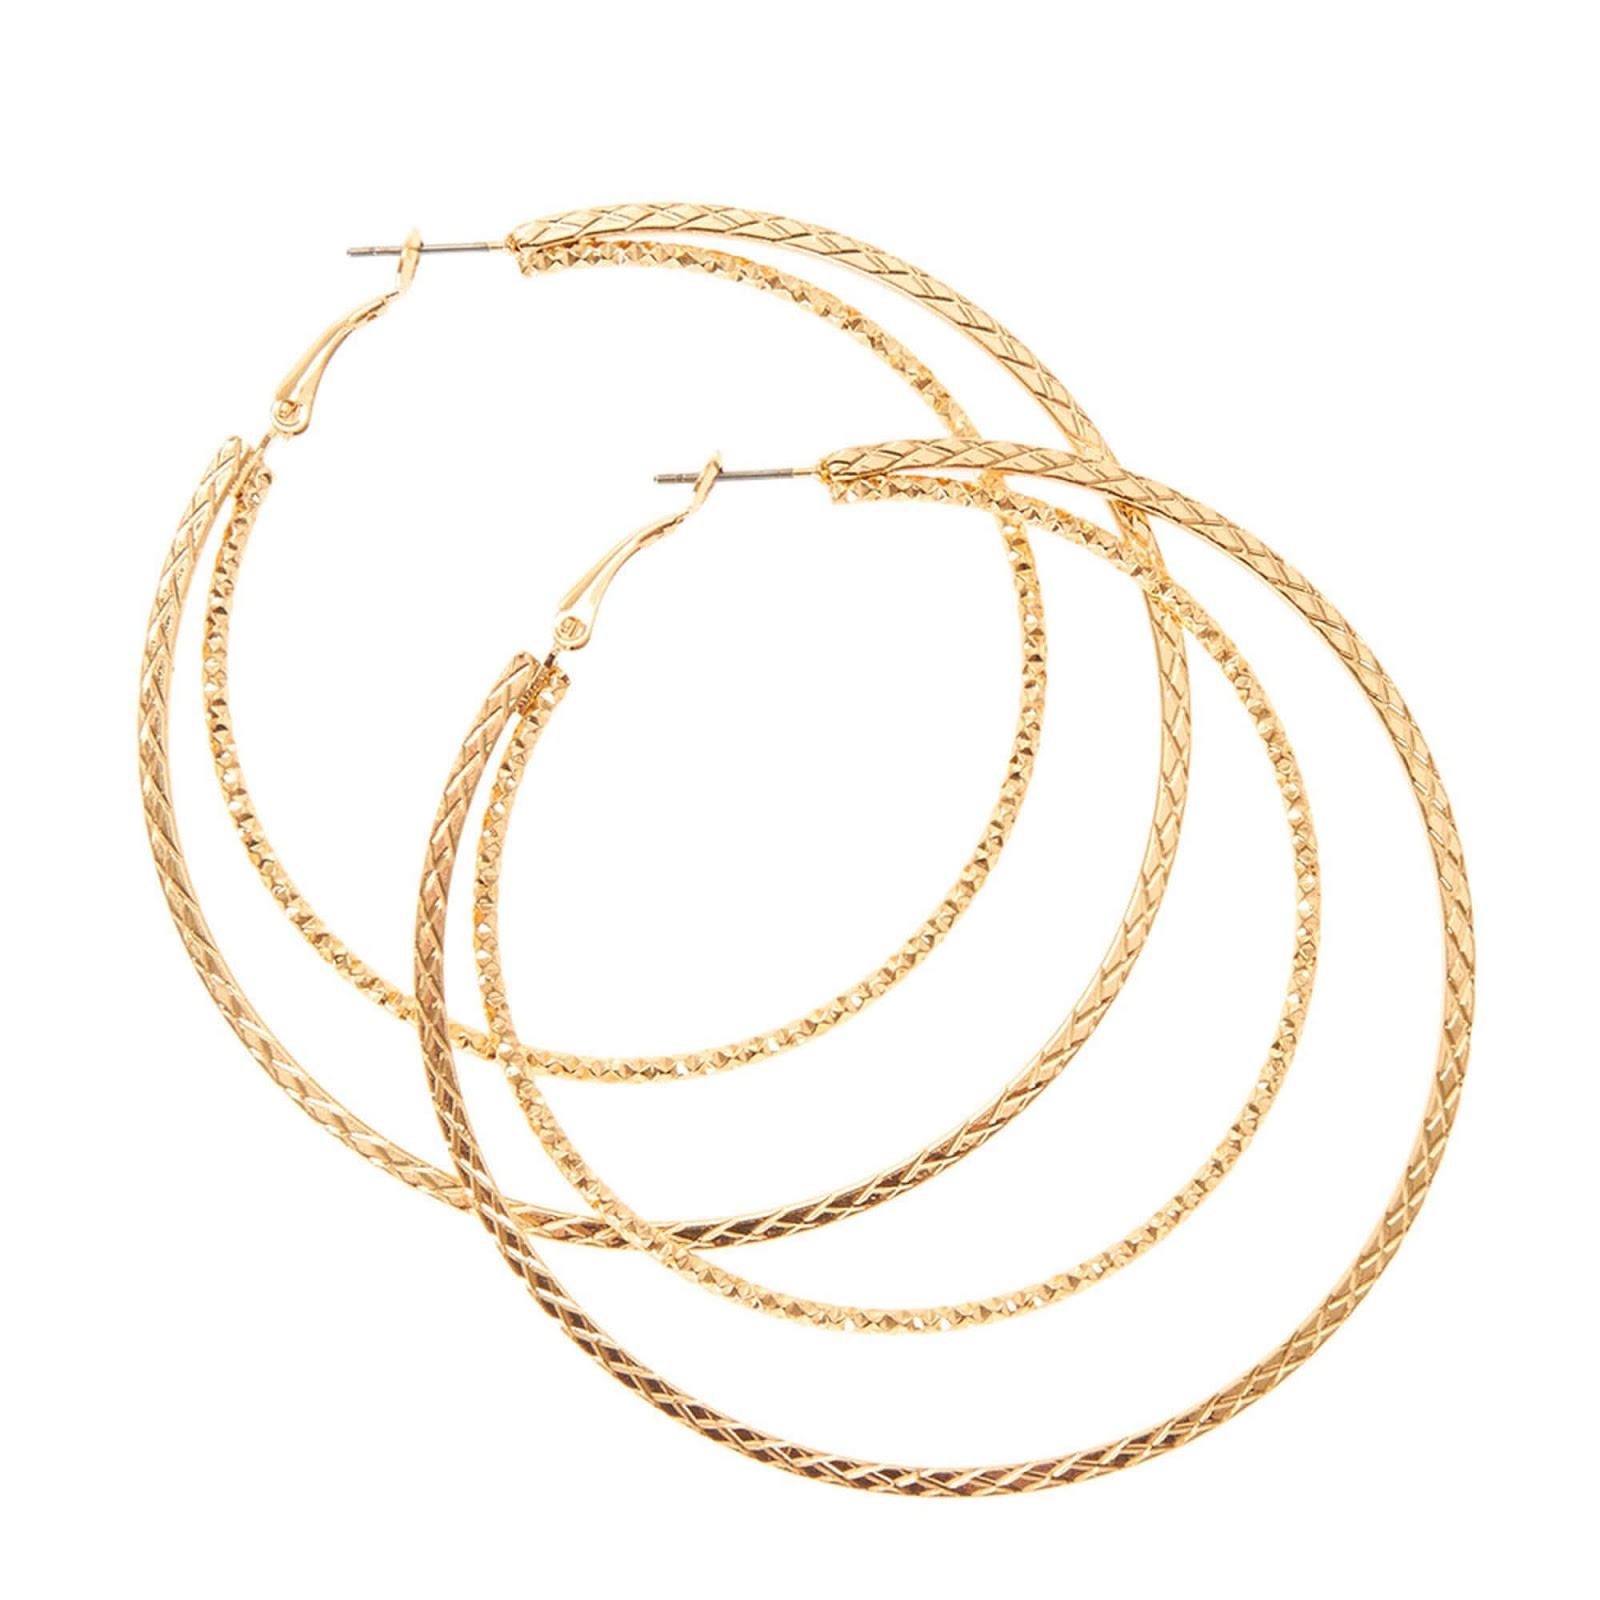 Claire's Gold Textured Double Hoop Earrings